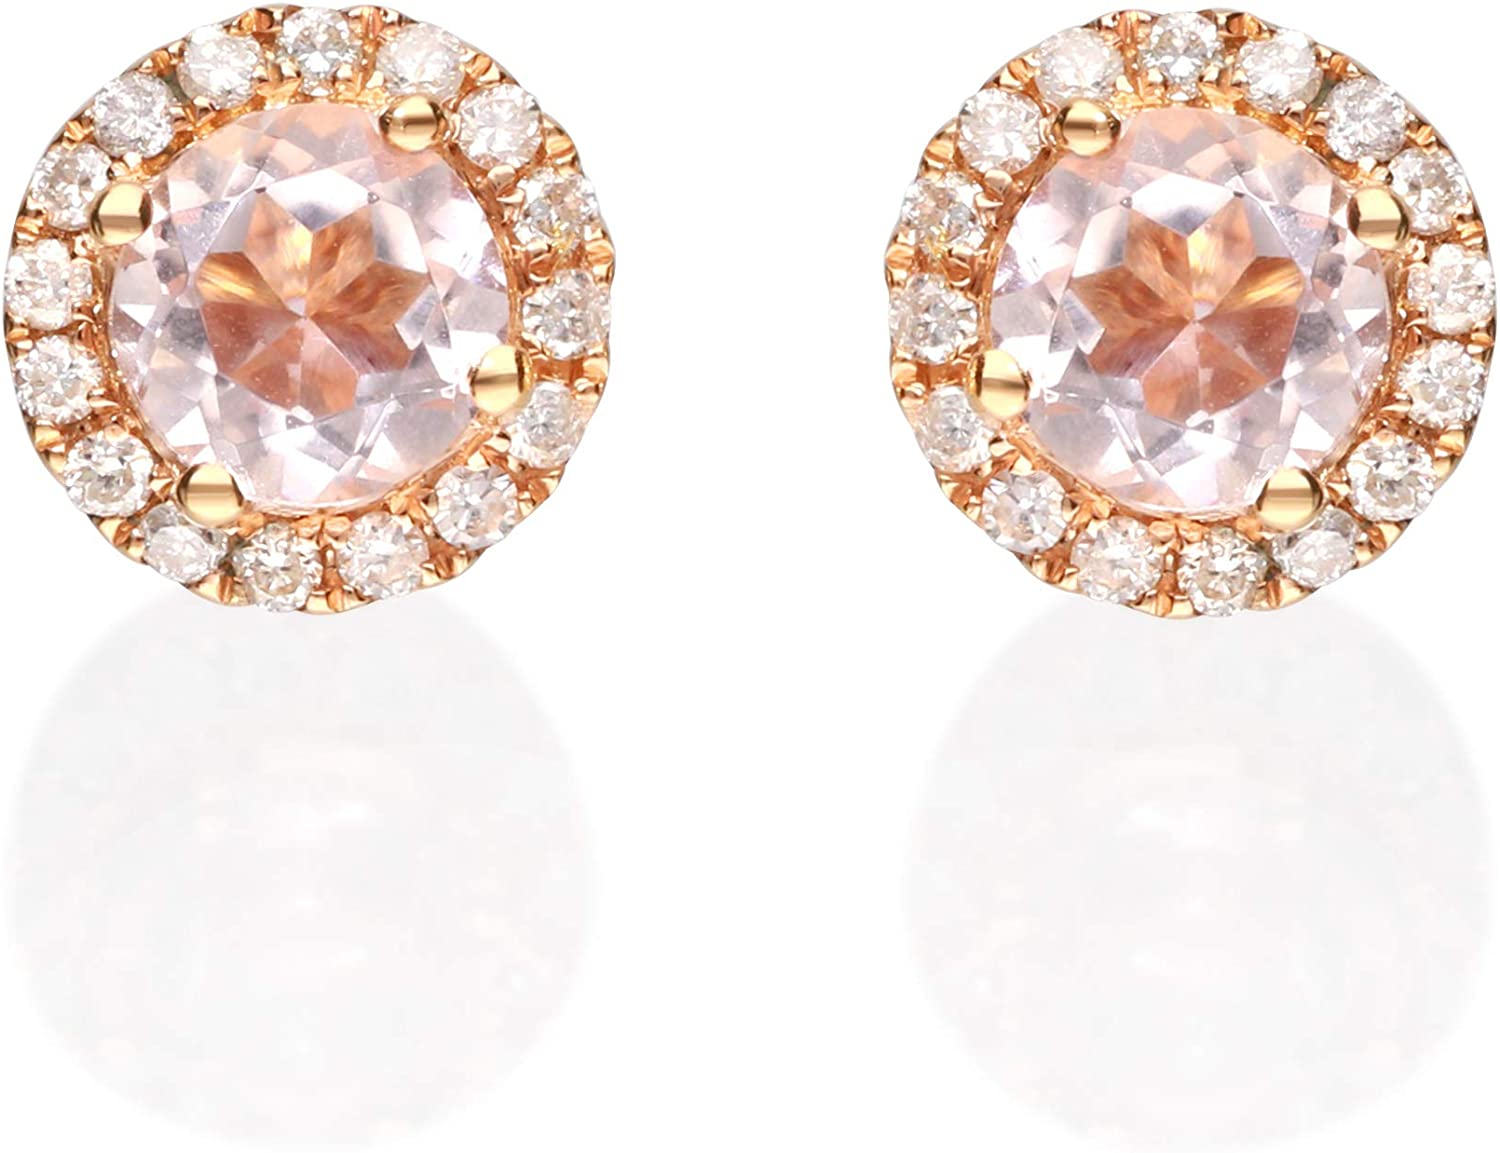 Gin & Grace 14K Rose Gold Natural Diamond(I1) Stud Earring with Genuine Morganite Daily Work Wear Jewelry for Women Gifts for Her